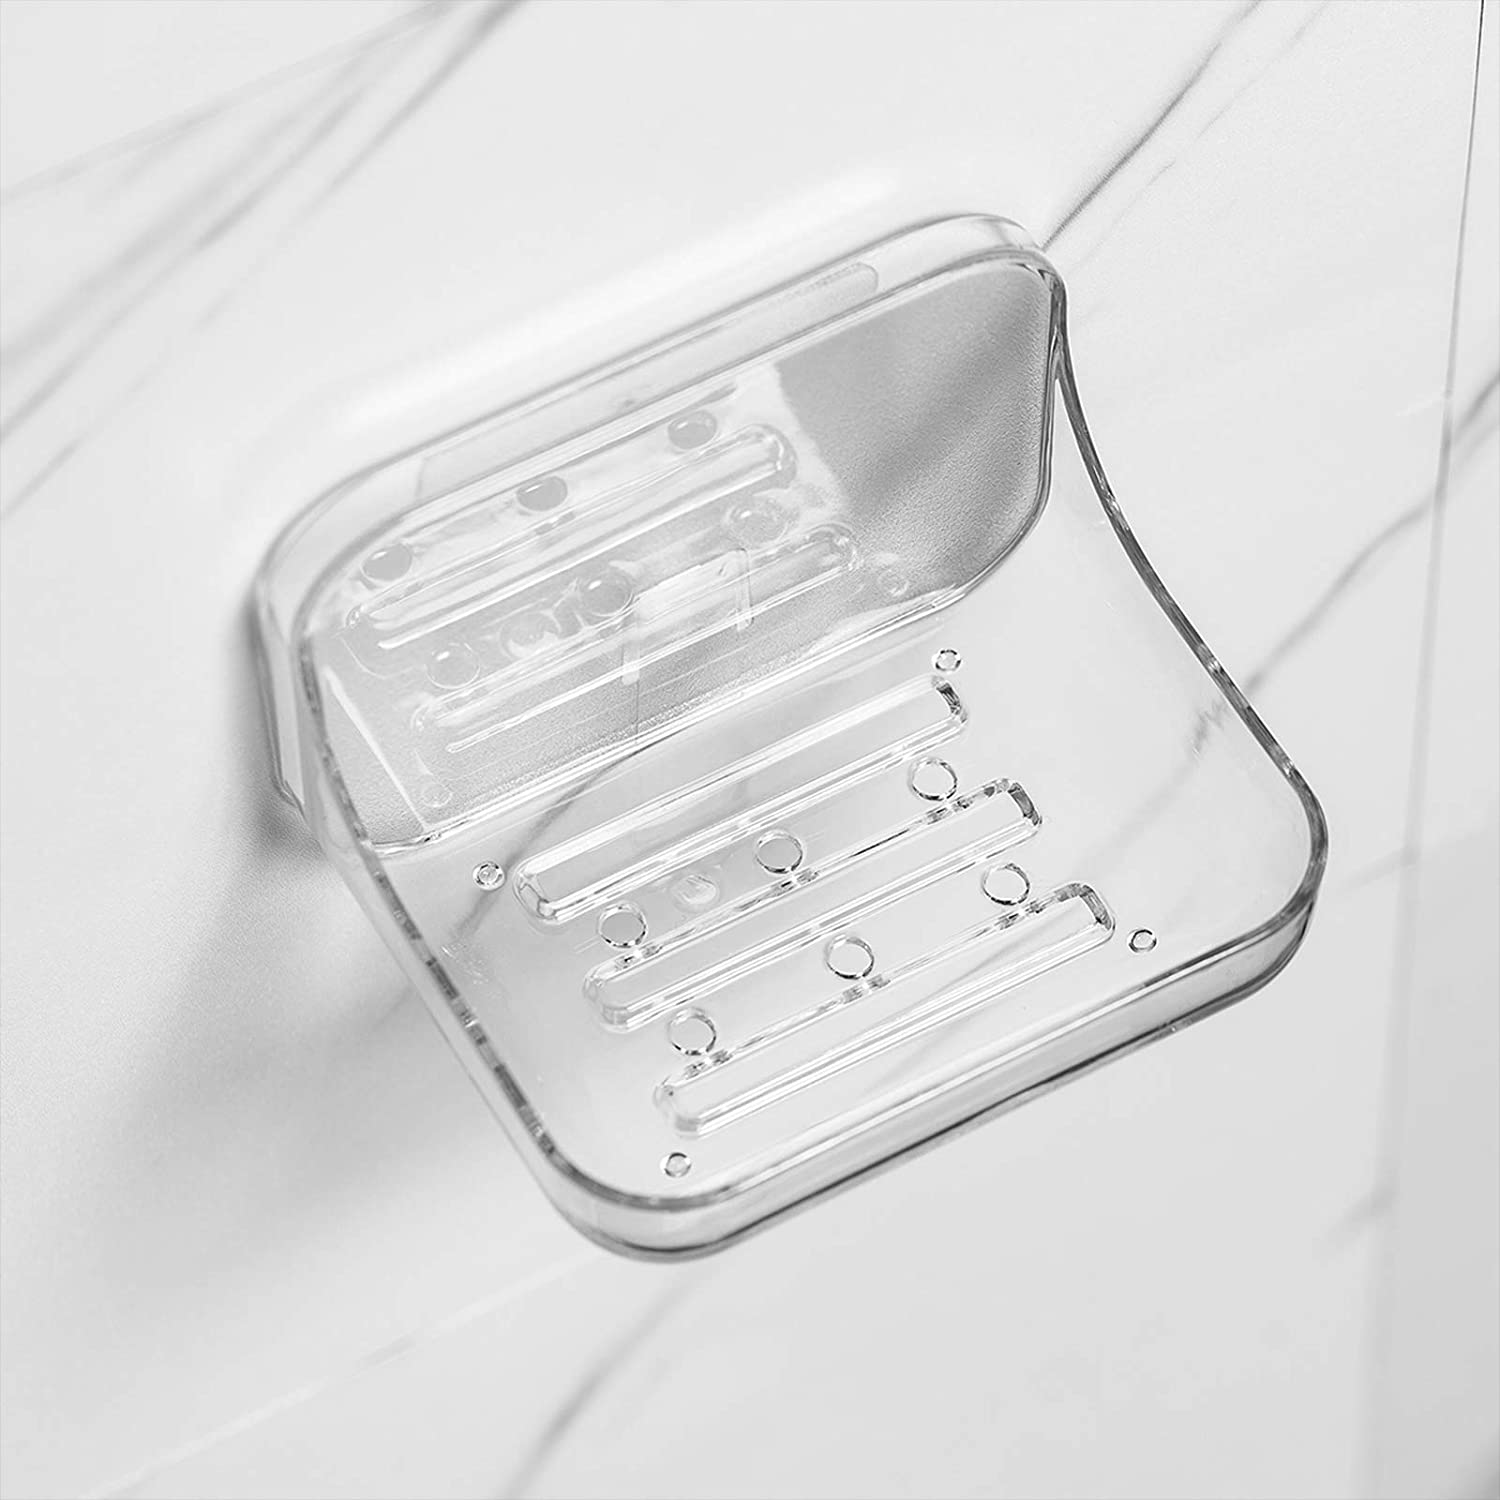 Ettori Soap Dish Holder Soap Holder with Wall Mounted Adhesive Kitchen Shower Soap Sponge Holder for Bathroom No Drilling,Clear Plastic